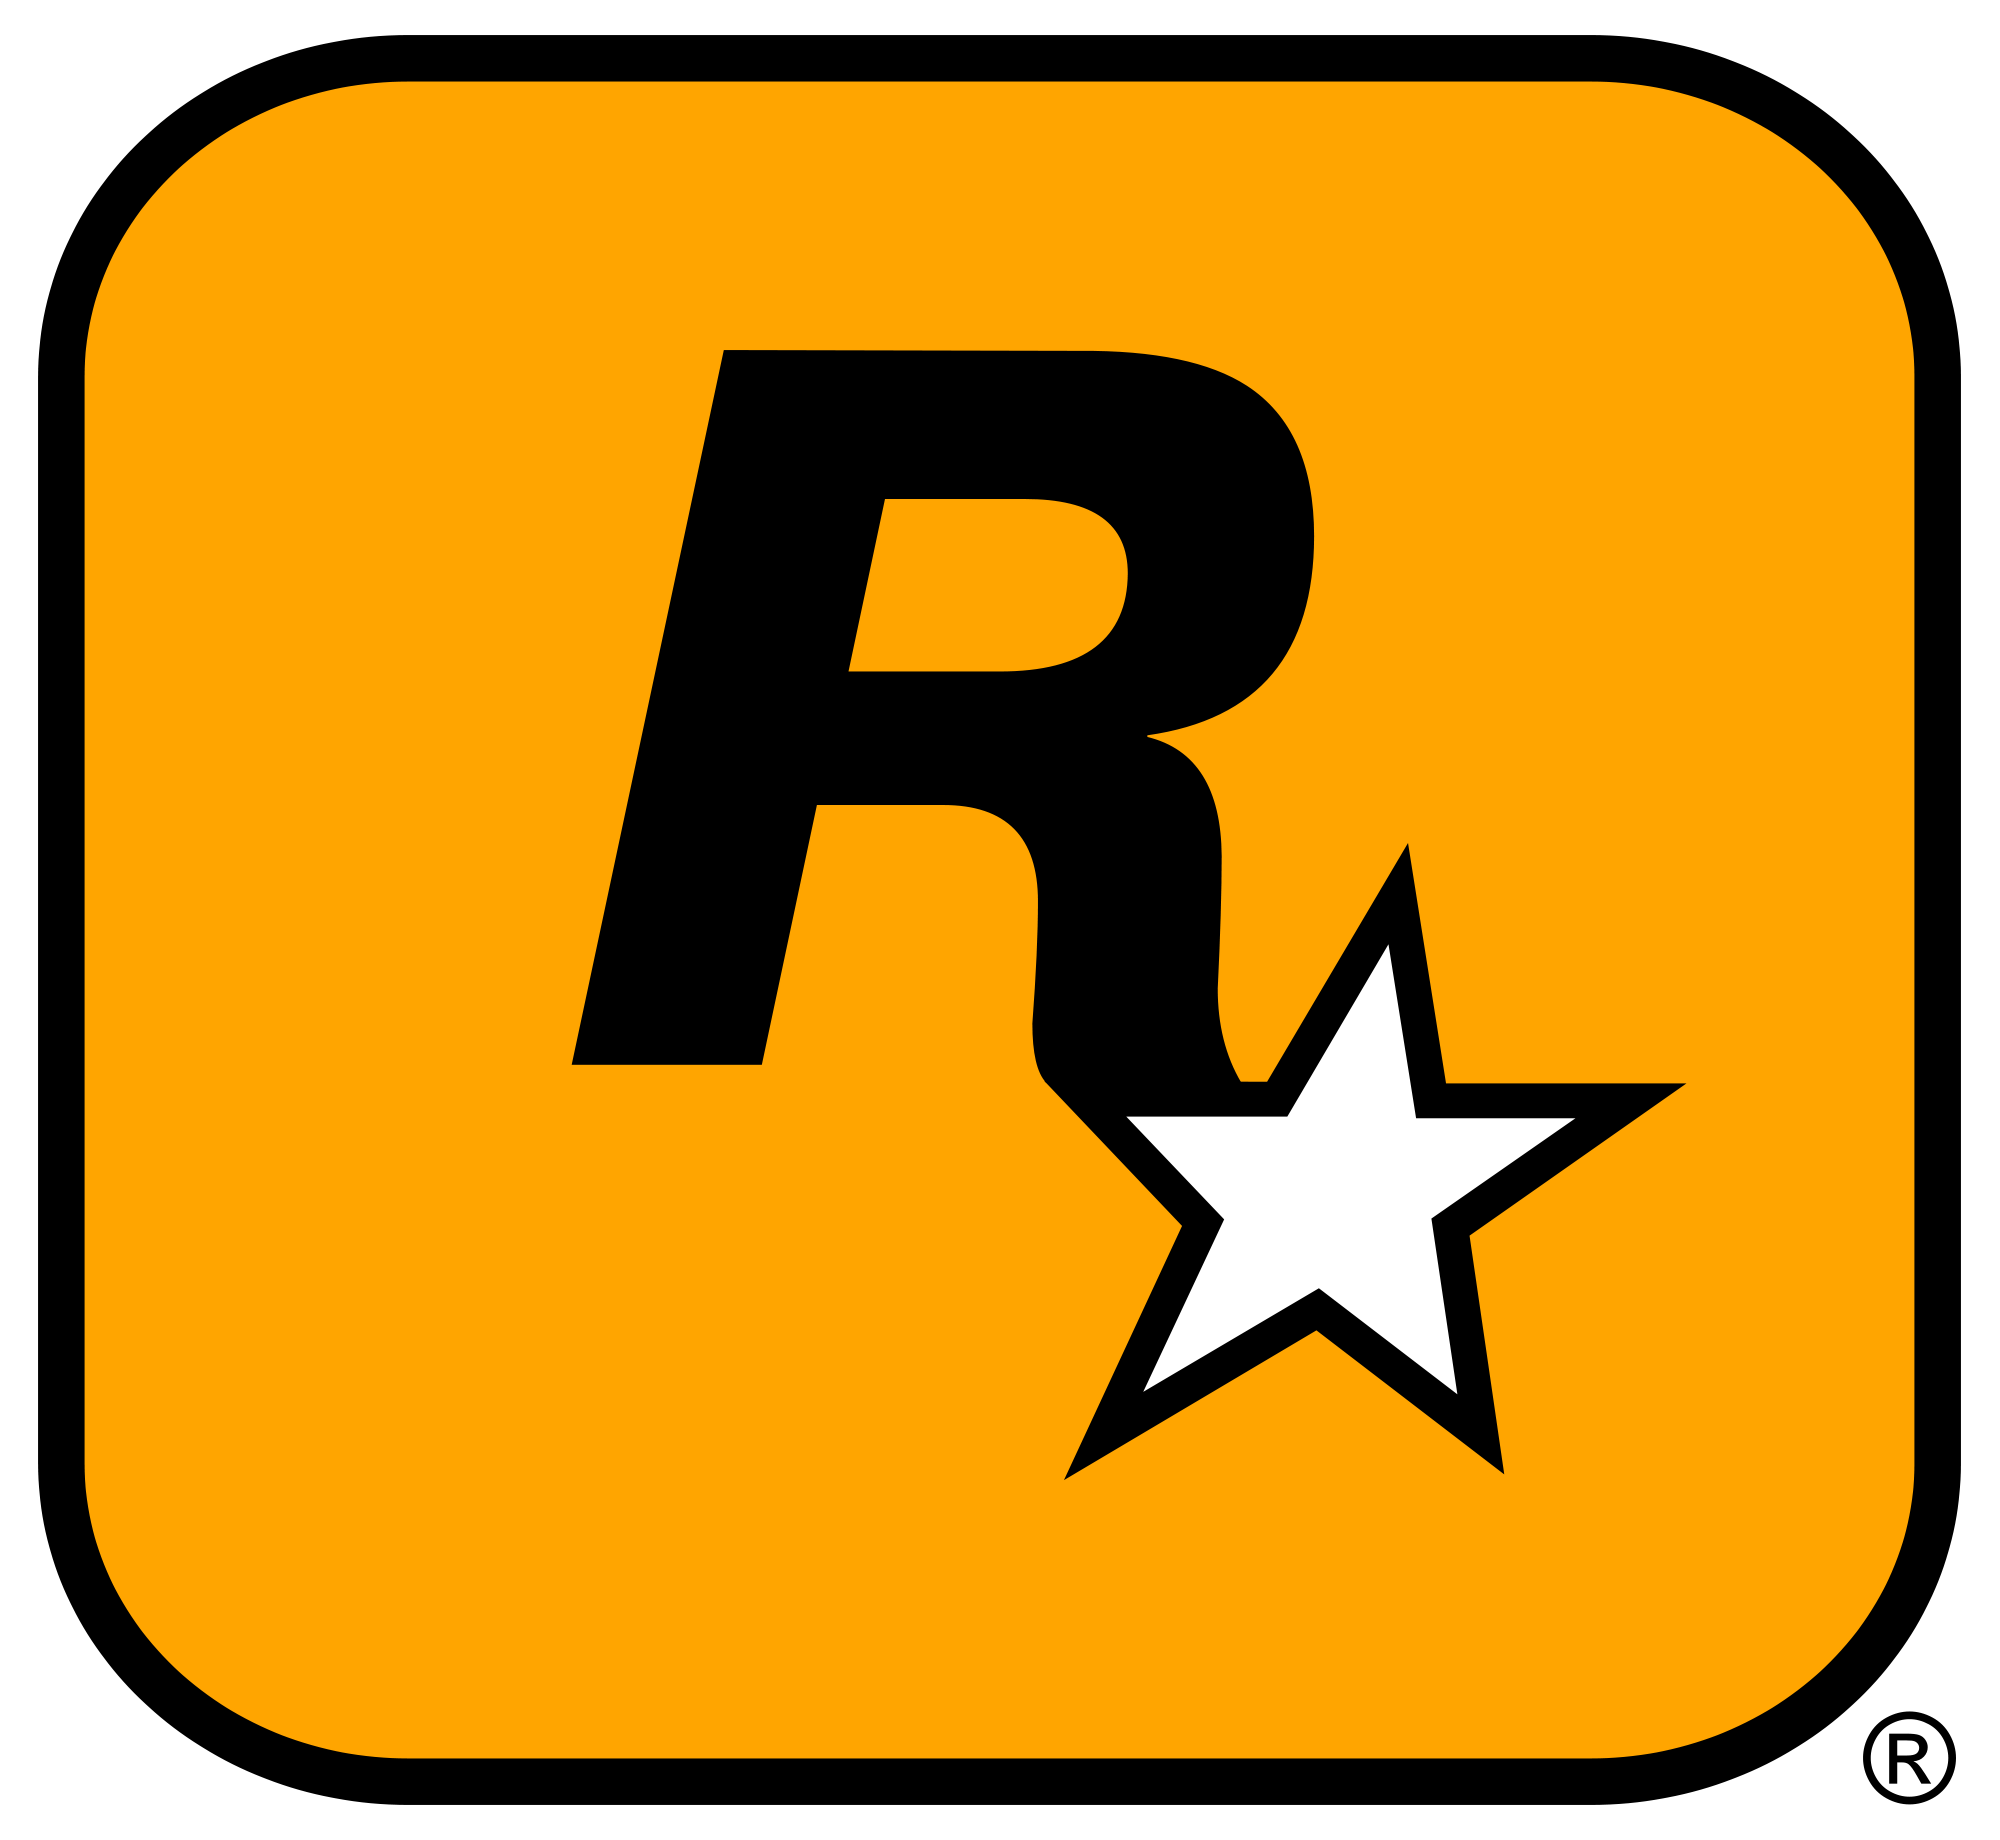 Rockstar Games (GTA) Logo Wallpaper